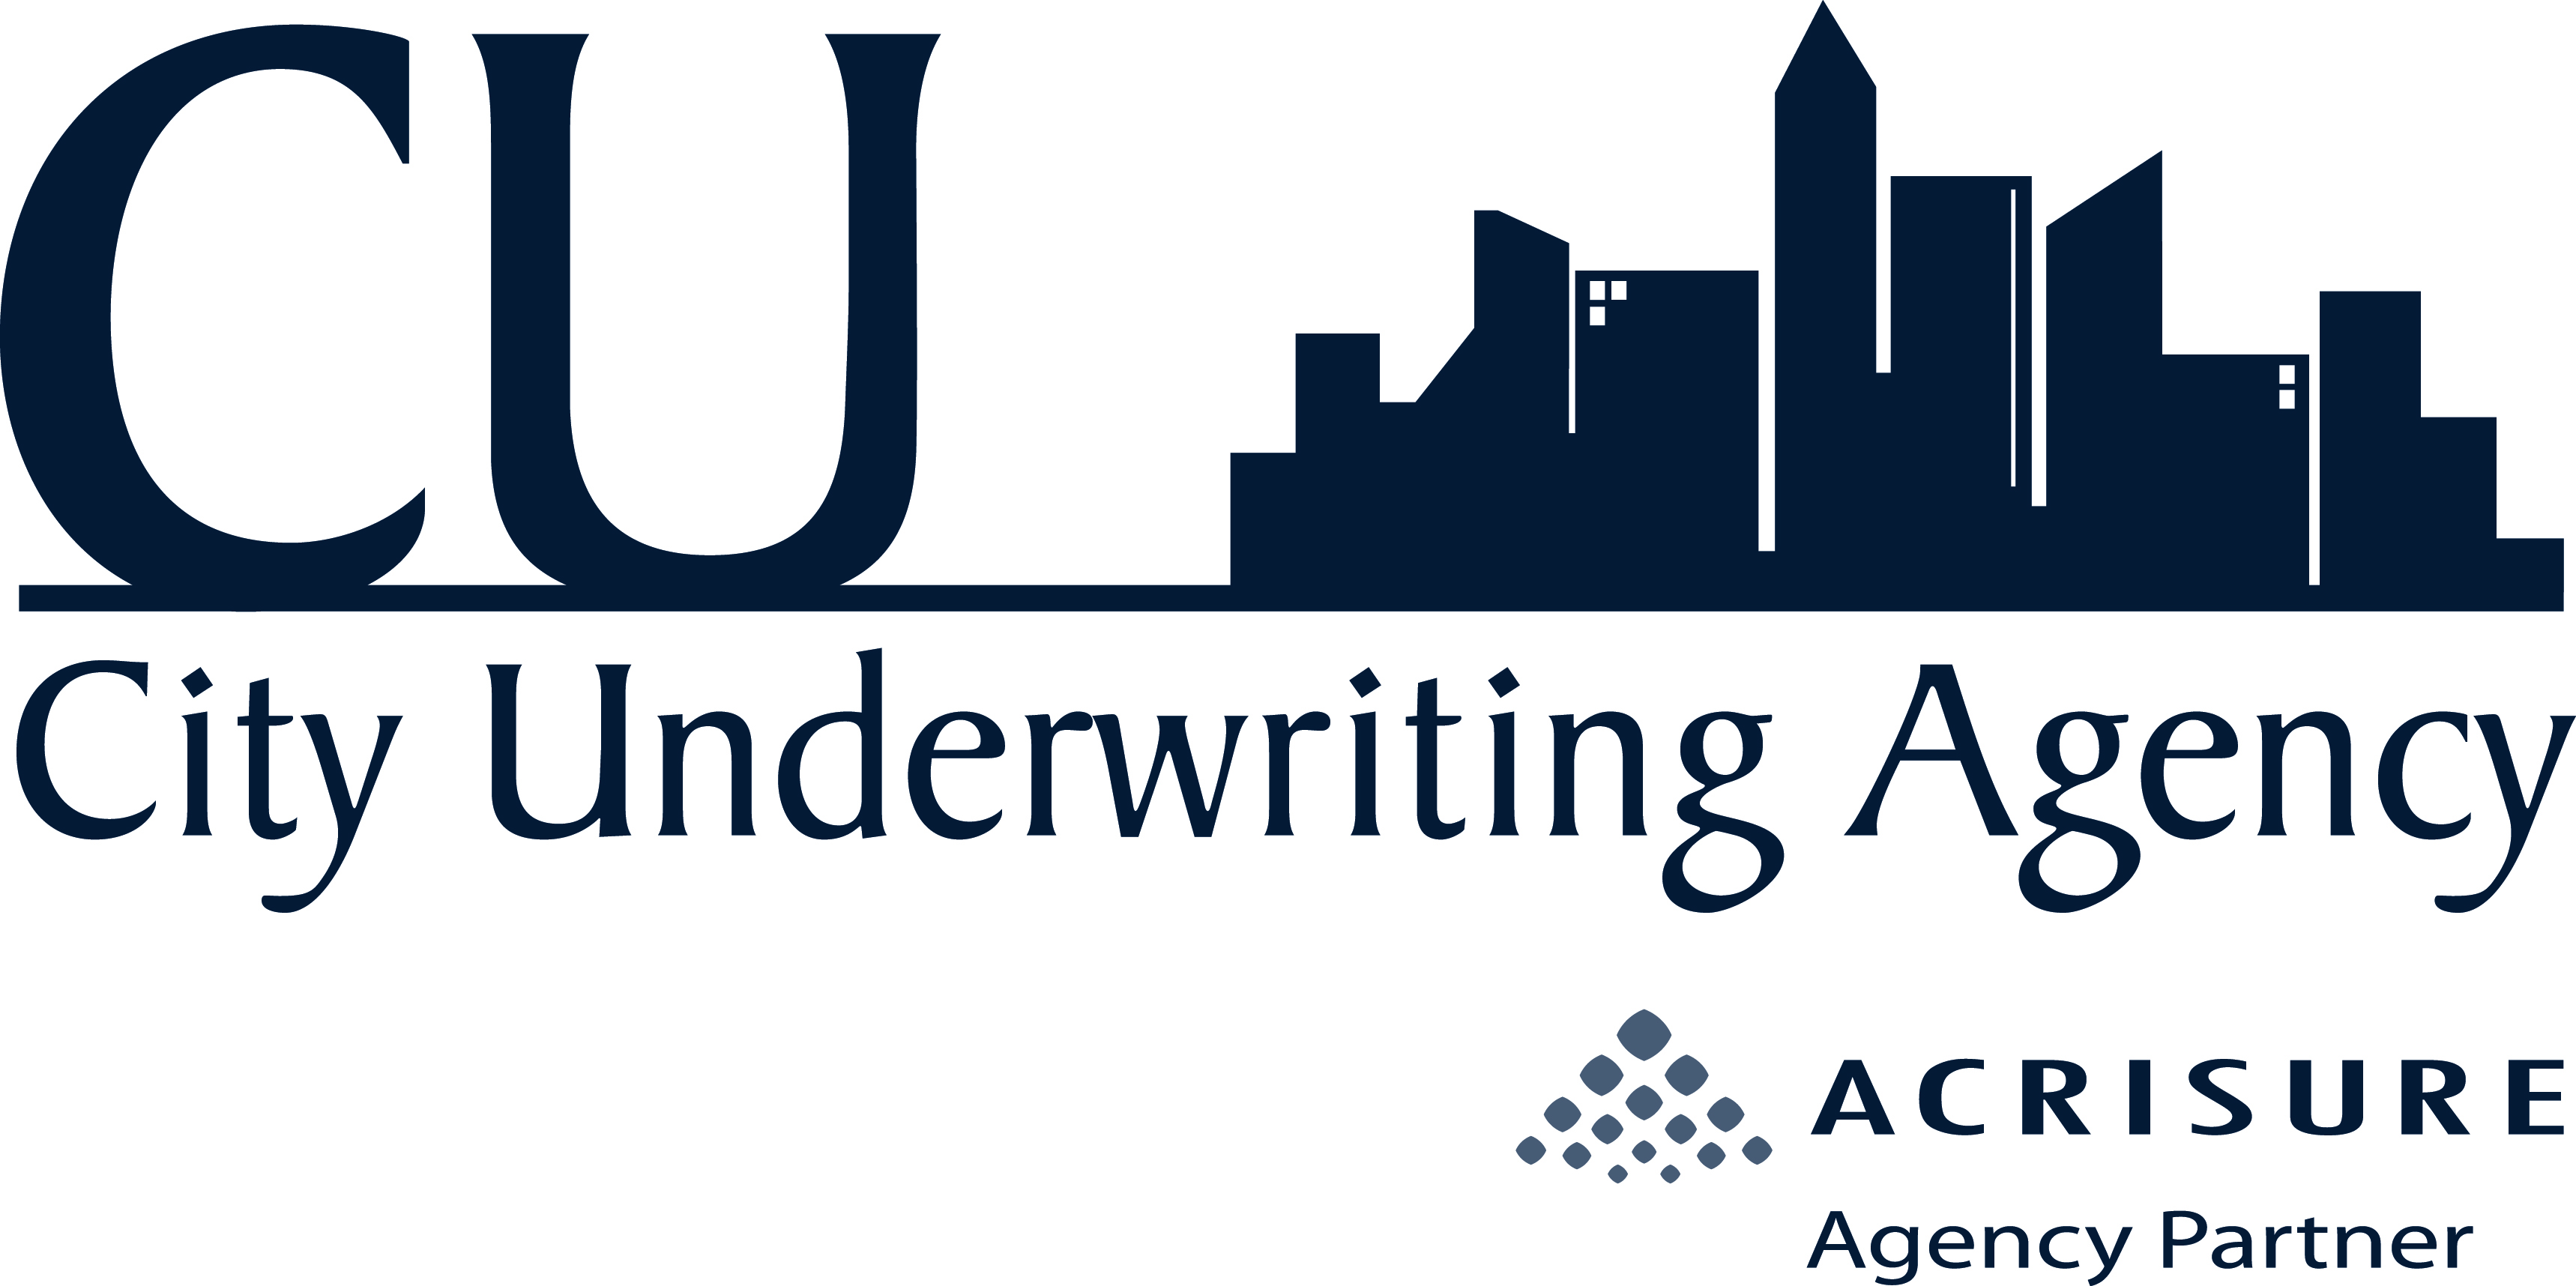 City Underwriting Agency